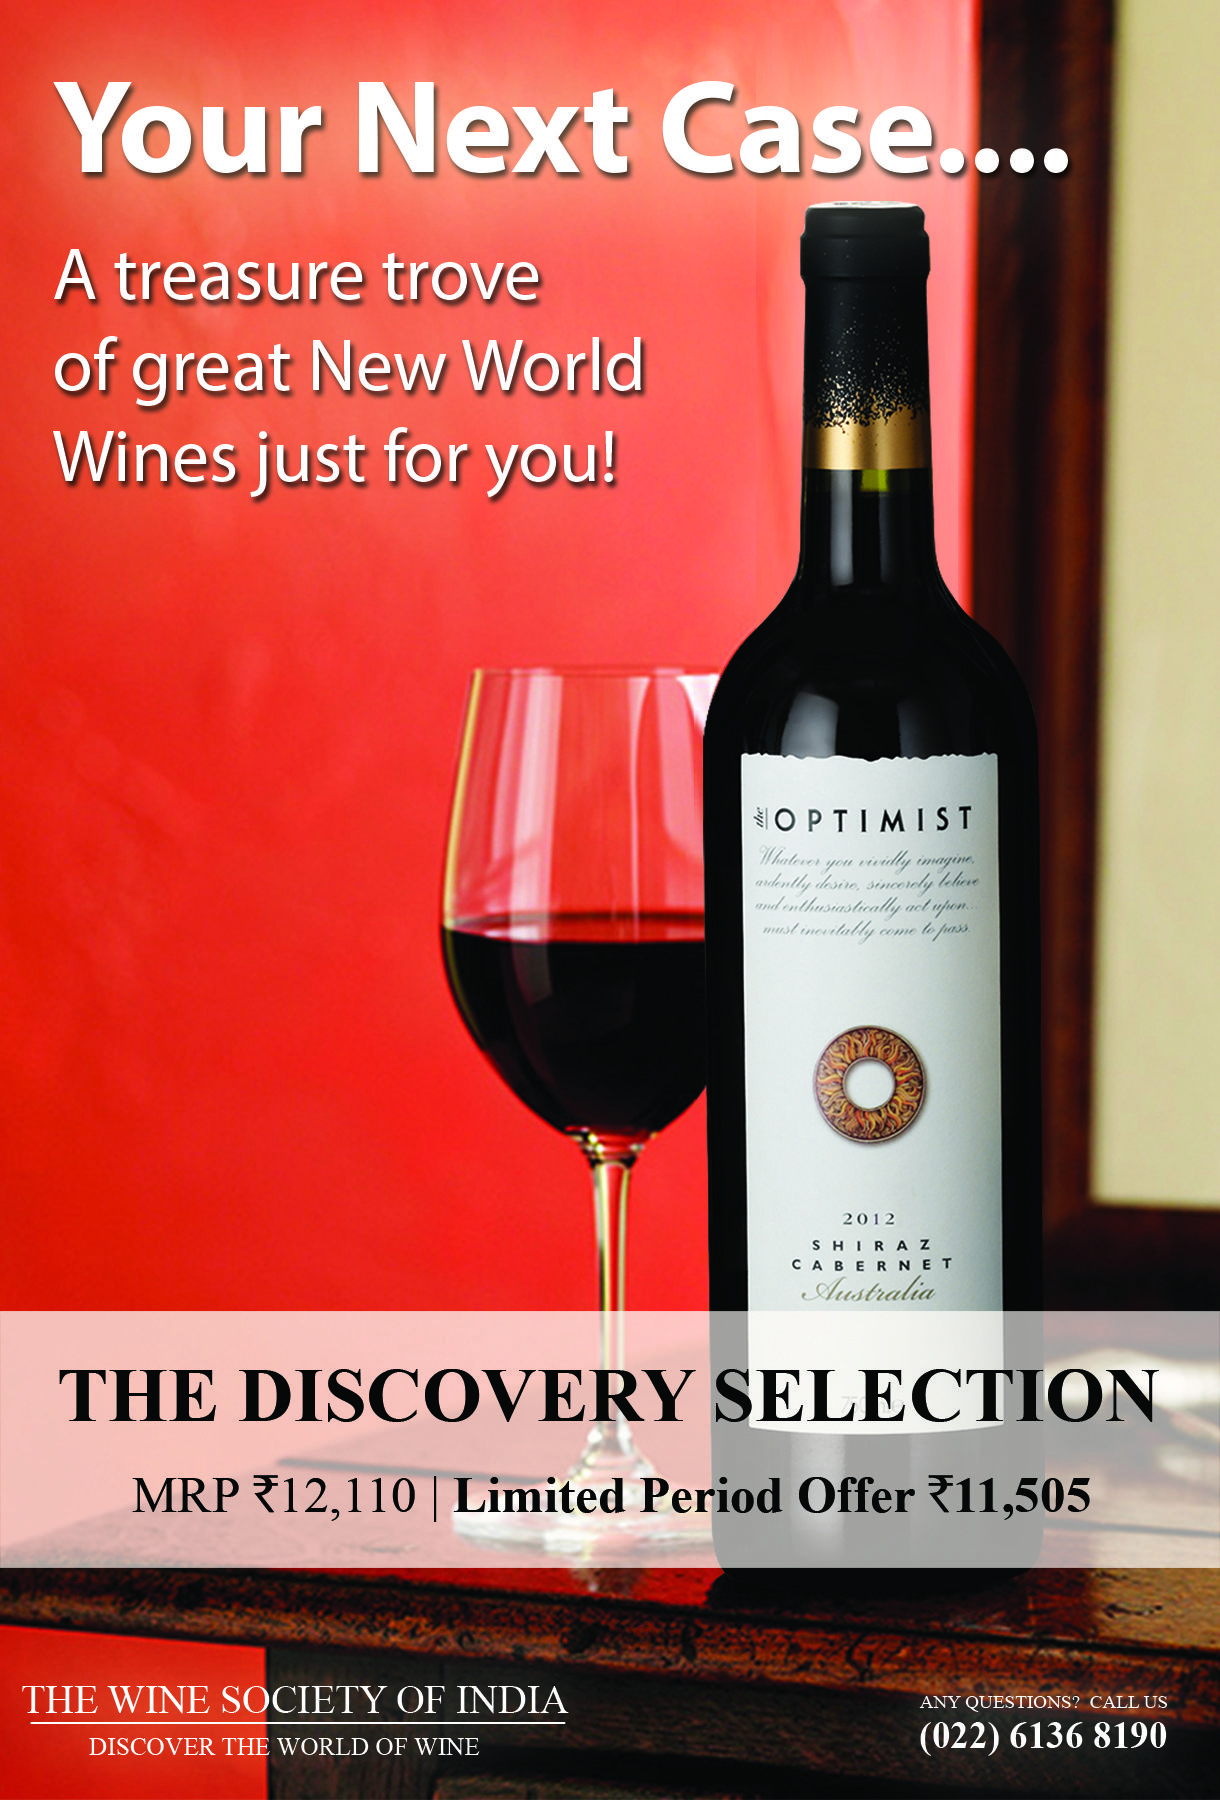 Tasting Notes Print Cover Wine Society Wines Red Wine